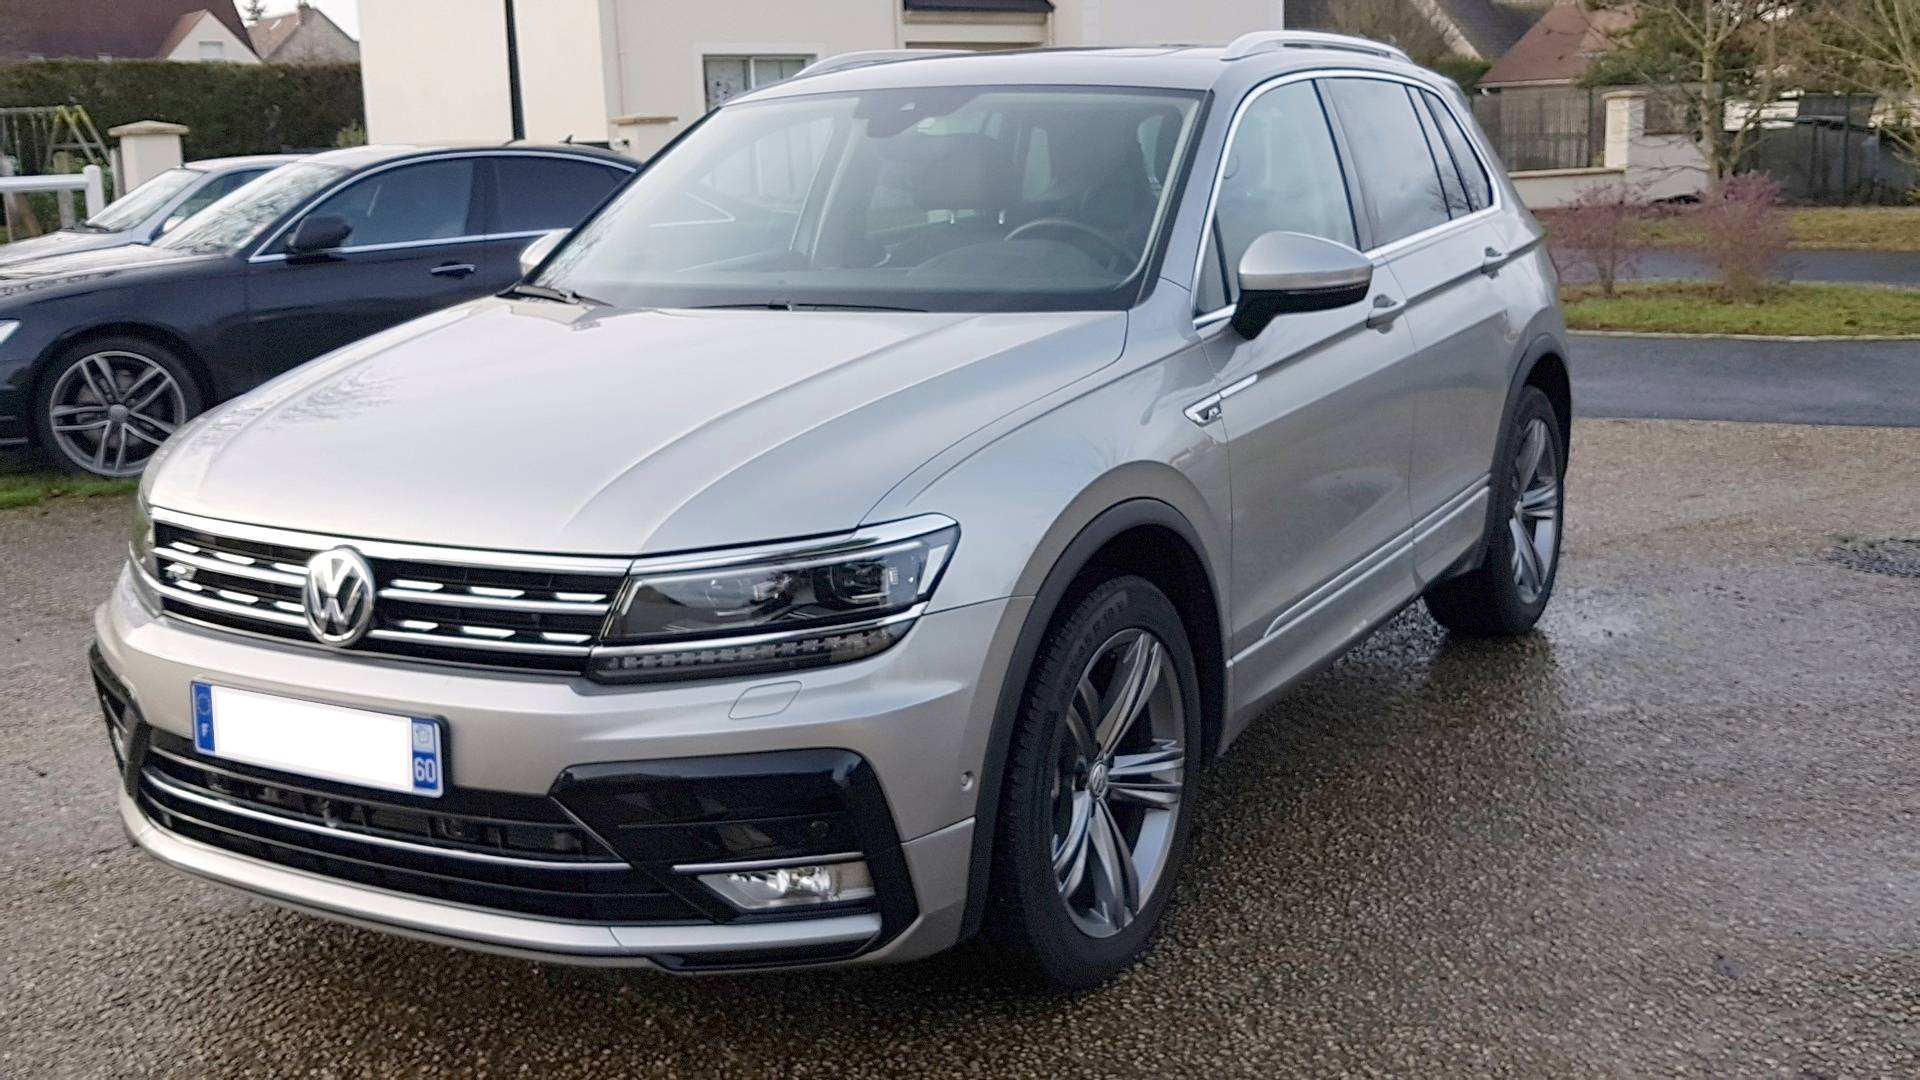 volkswagen tiguan d 39 occasion 1 4 tsi 150 bluemotion act carat dsg bva orry la ville carizy. Black Bedroom Furniture Sets. Home Design Ideas